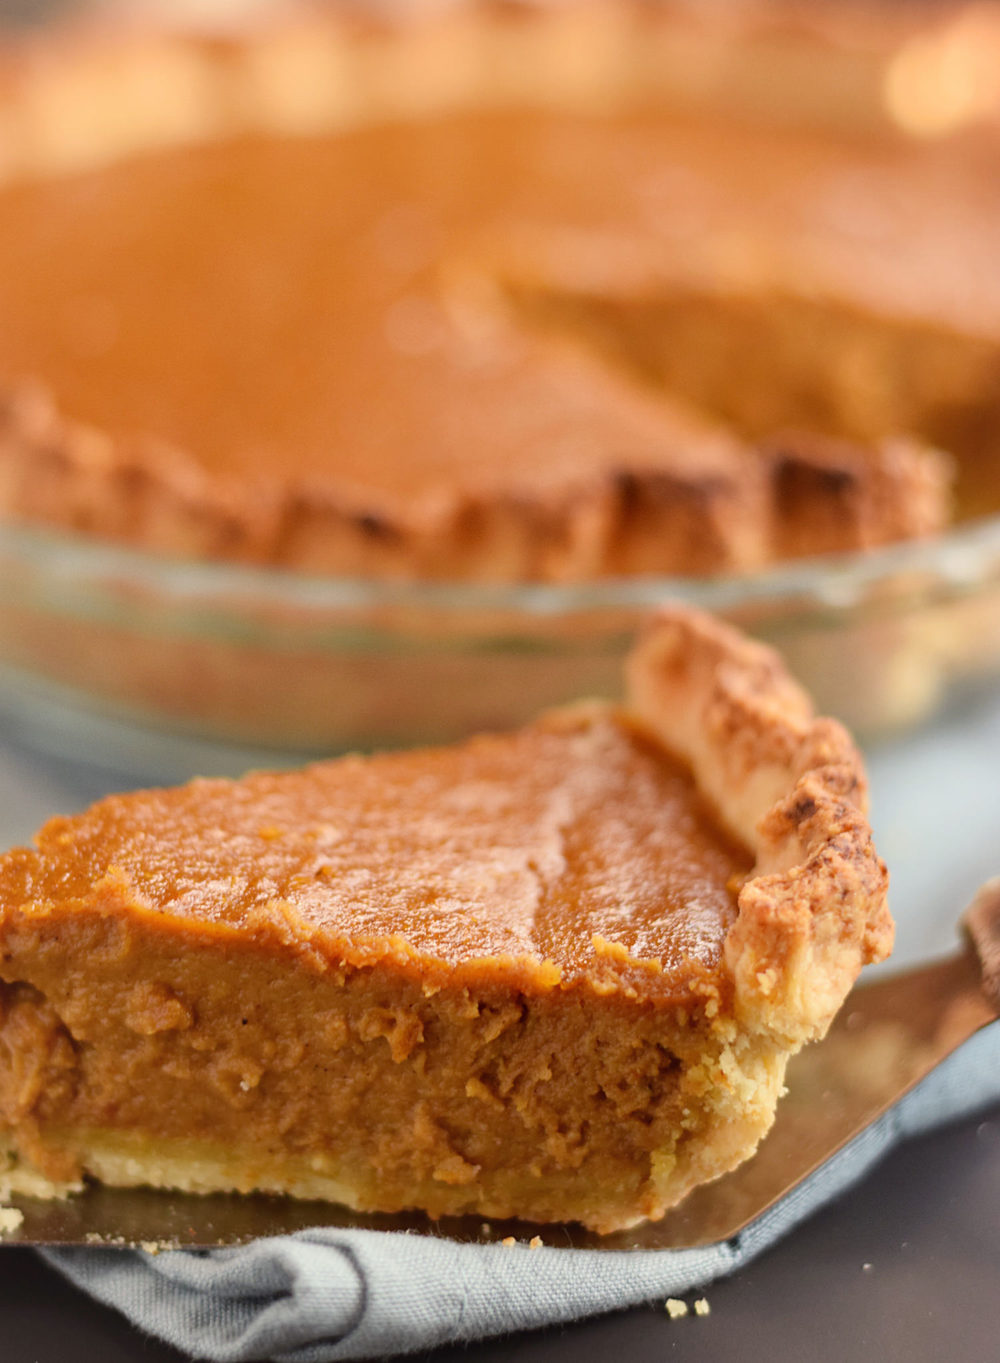 Epic Pumpkin Pie: amazing, flaky pie crust filled with an easy, flavorful pumpkin filling yielding one epic pie.  A Thanksgiving must! | trufflesandtrends.com